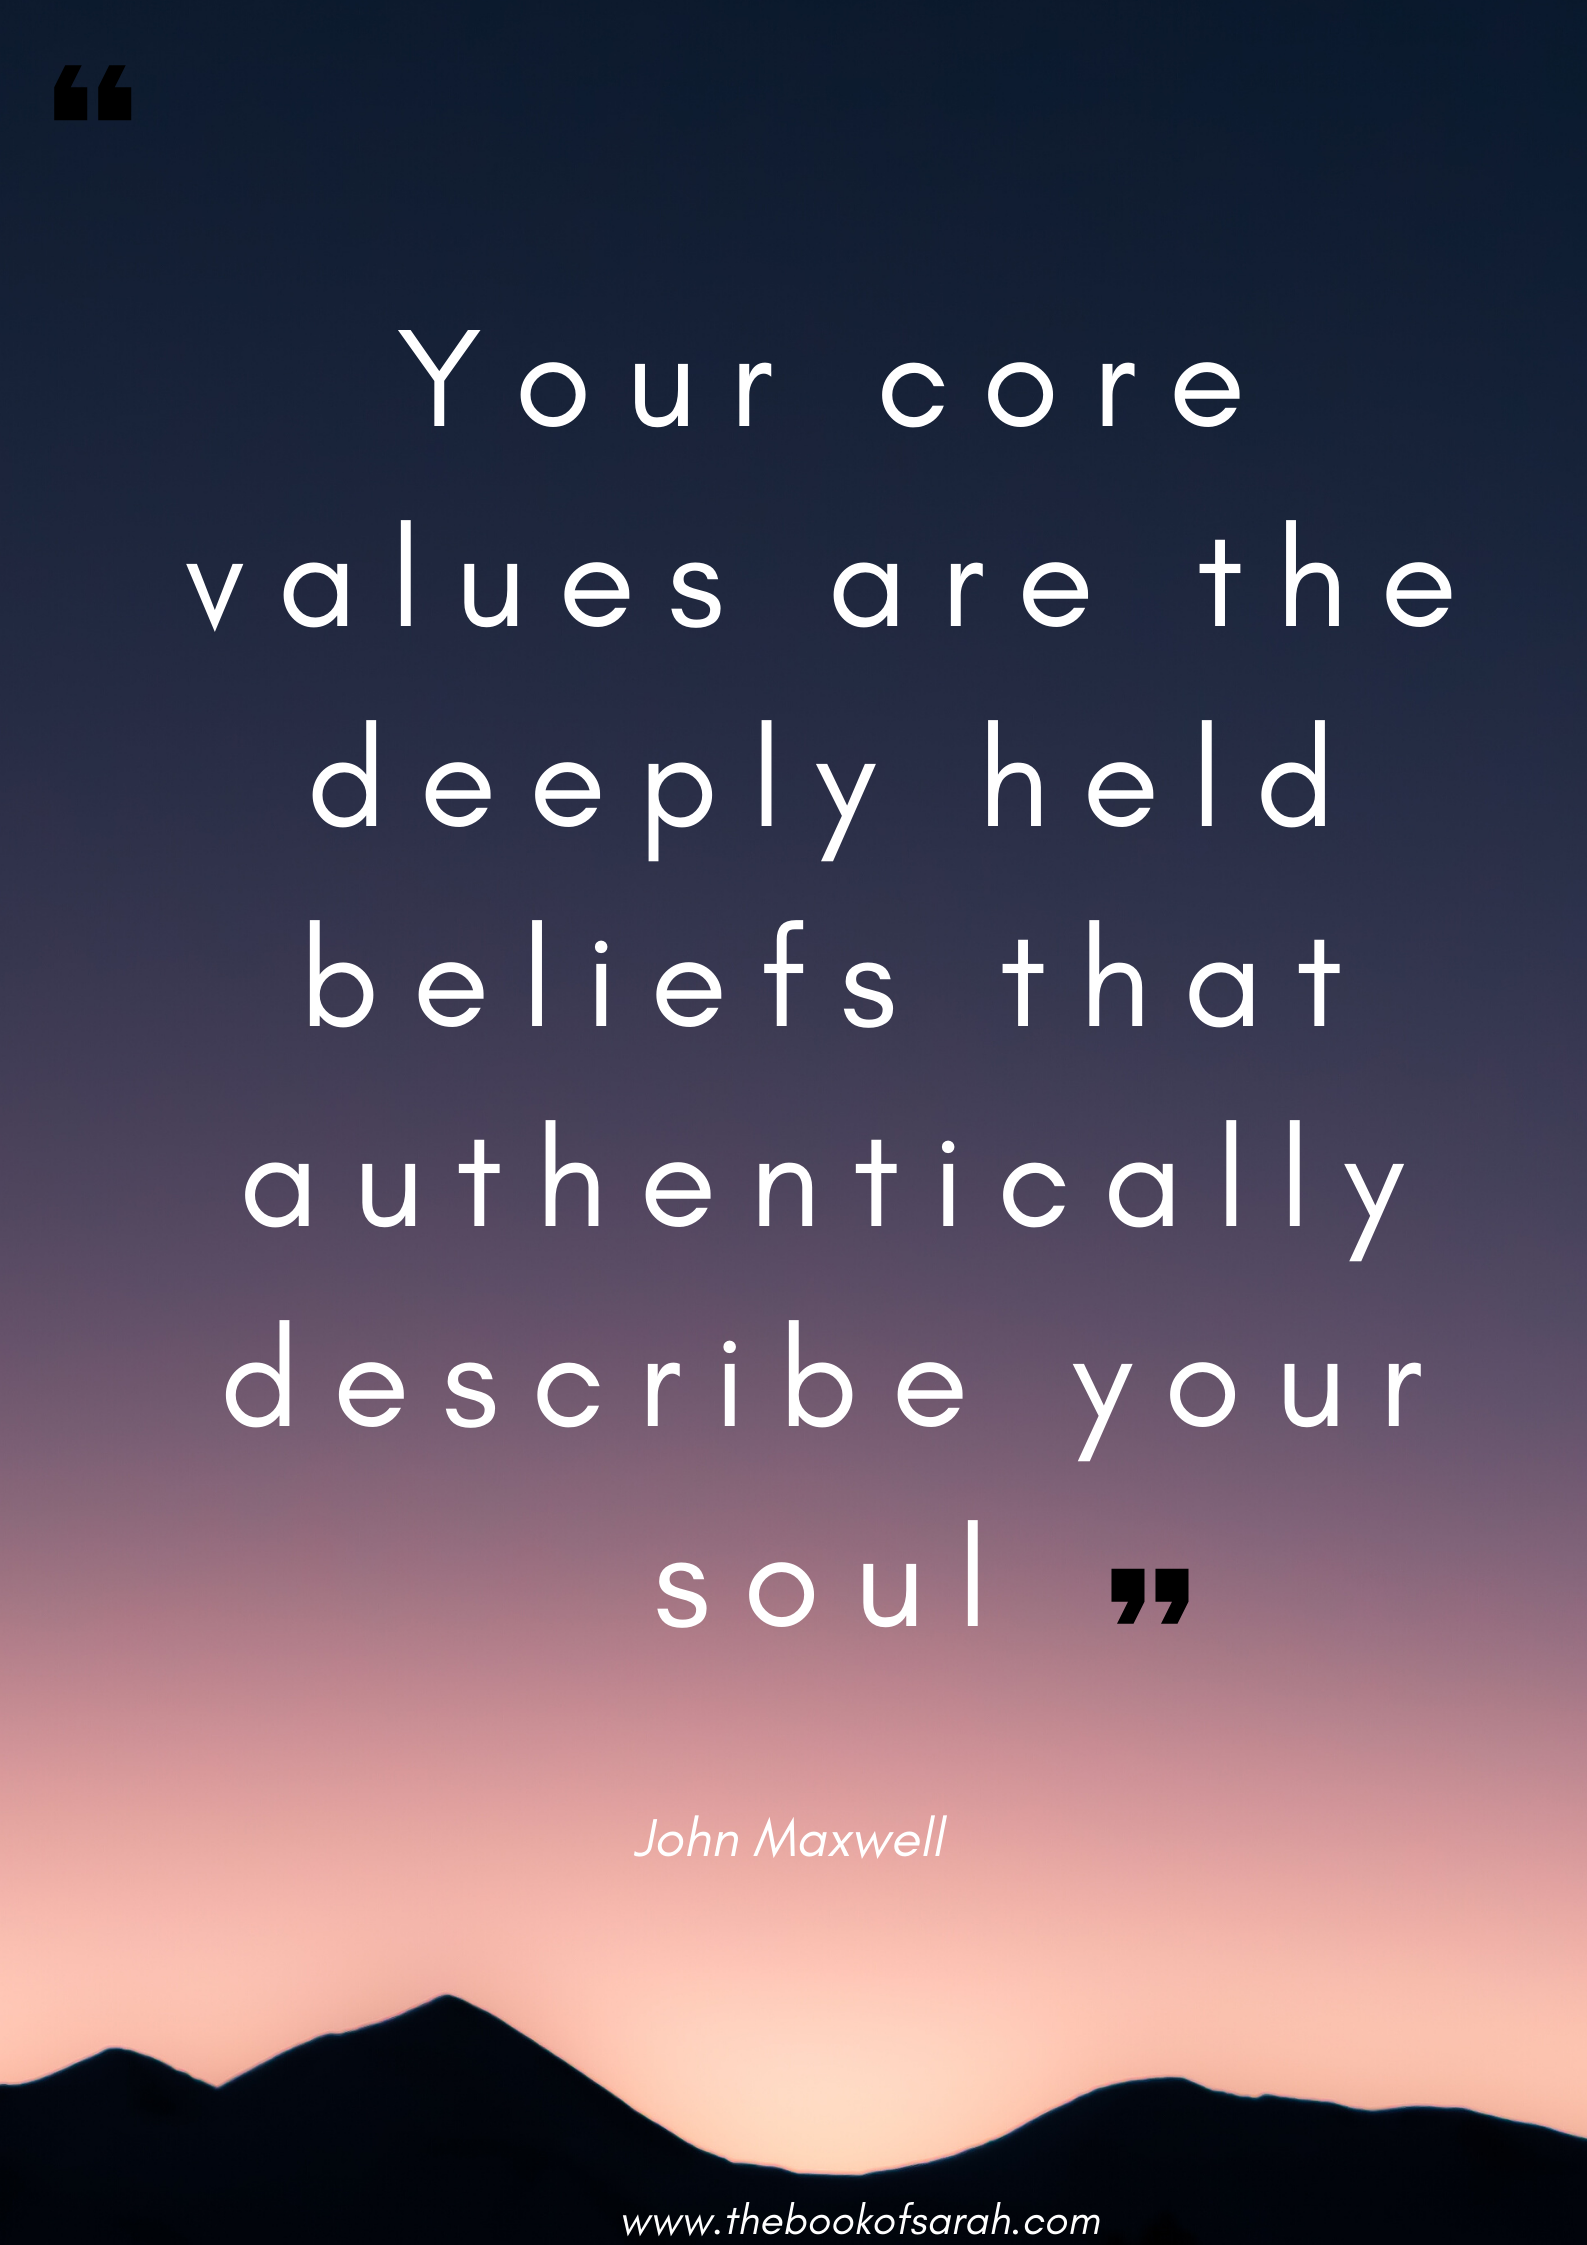 Quotes About Living An Authentic Life Self Belief Quotes Belief Quotes Value Quotes